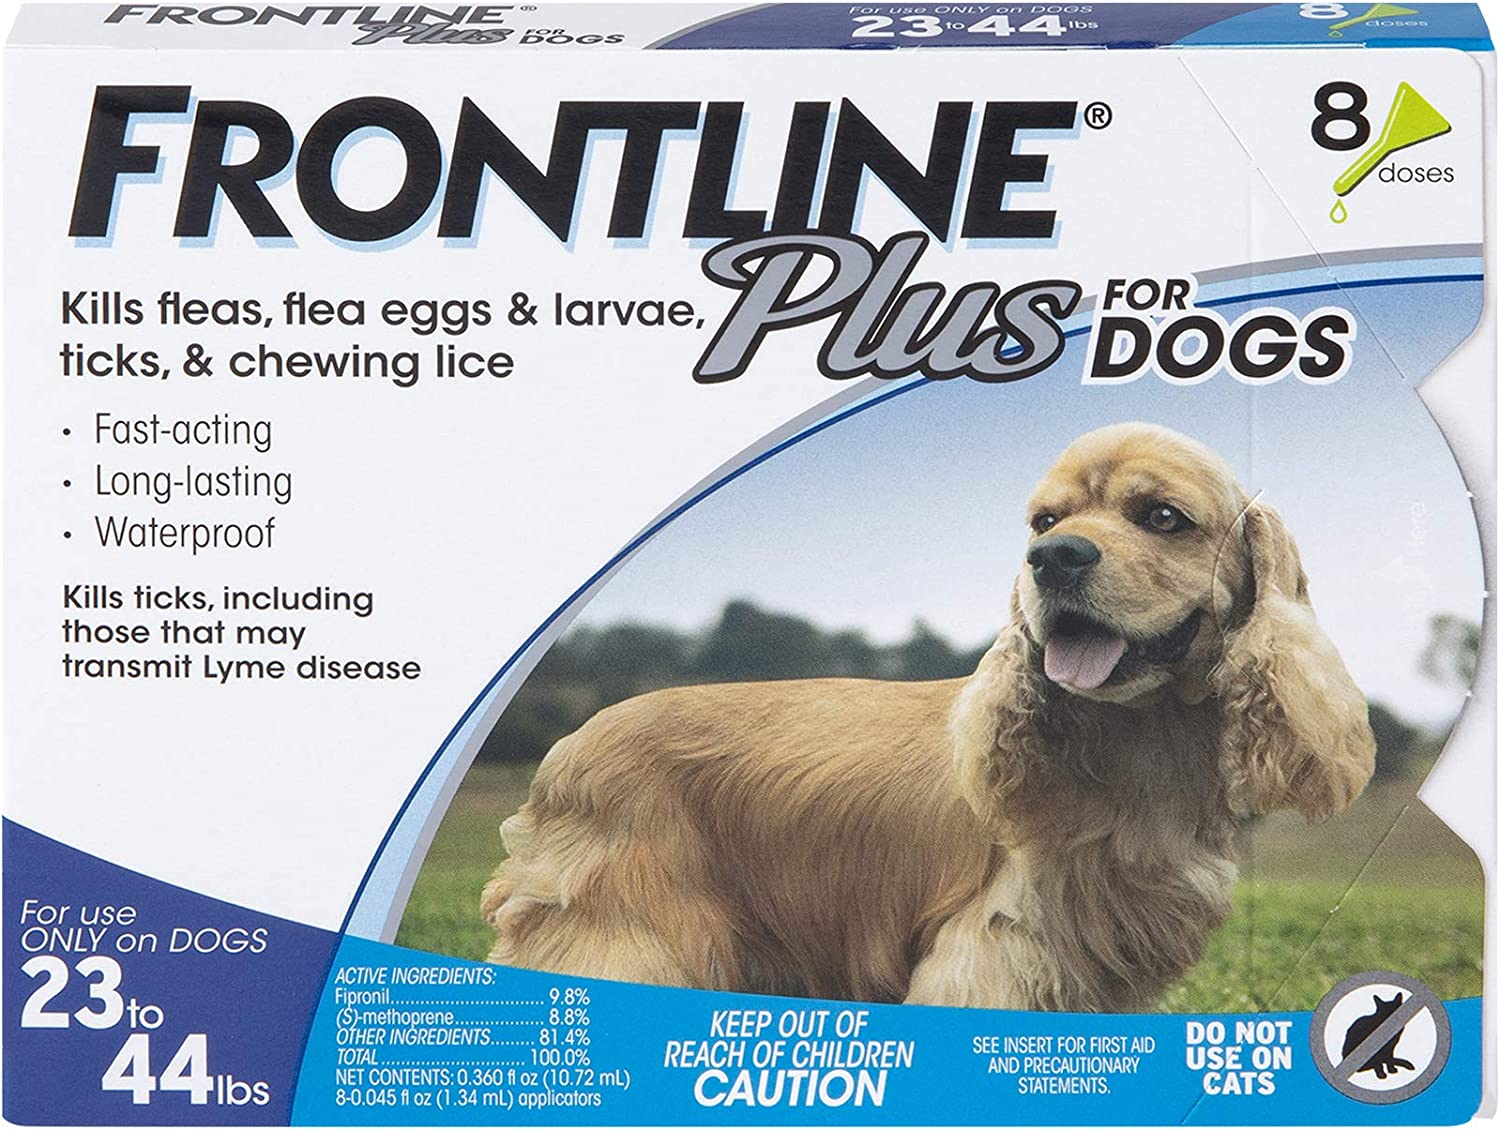 FRONTLINE Plus Flea and Tick Treatment for Dogs (Medium Dog, 23-44 Pounds, 8 Doses)